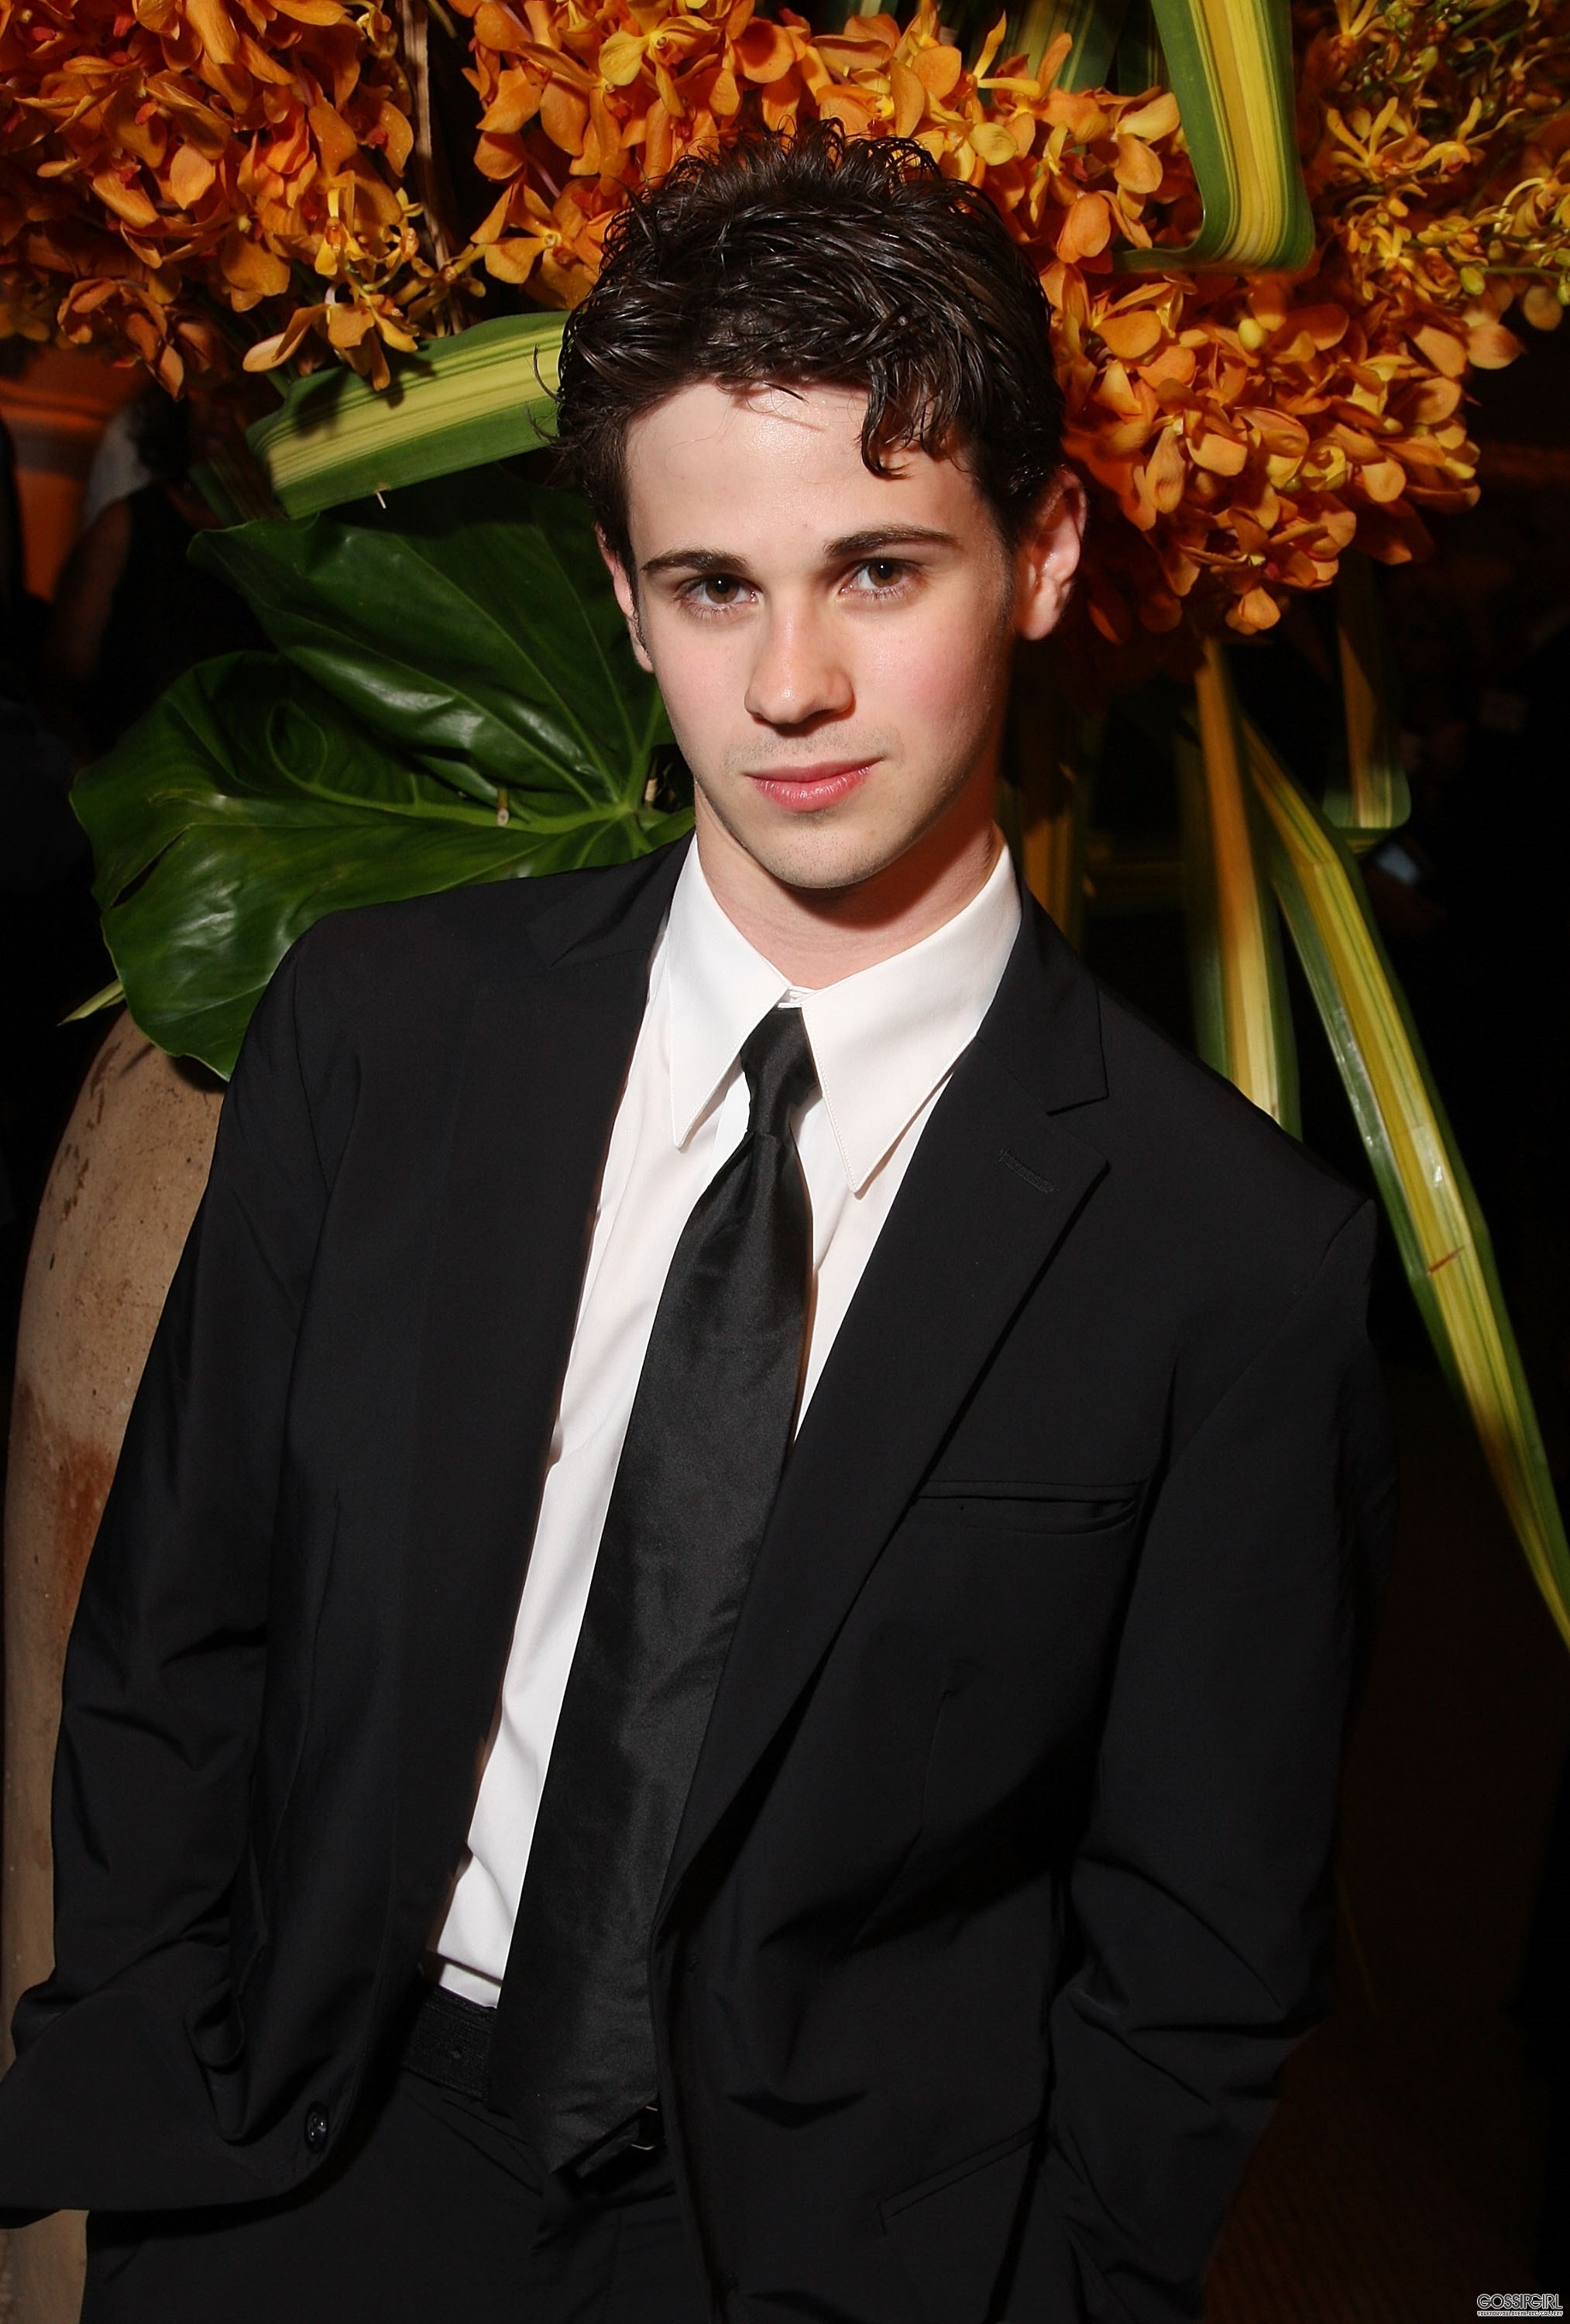 connor paolo wiki